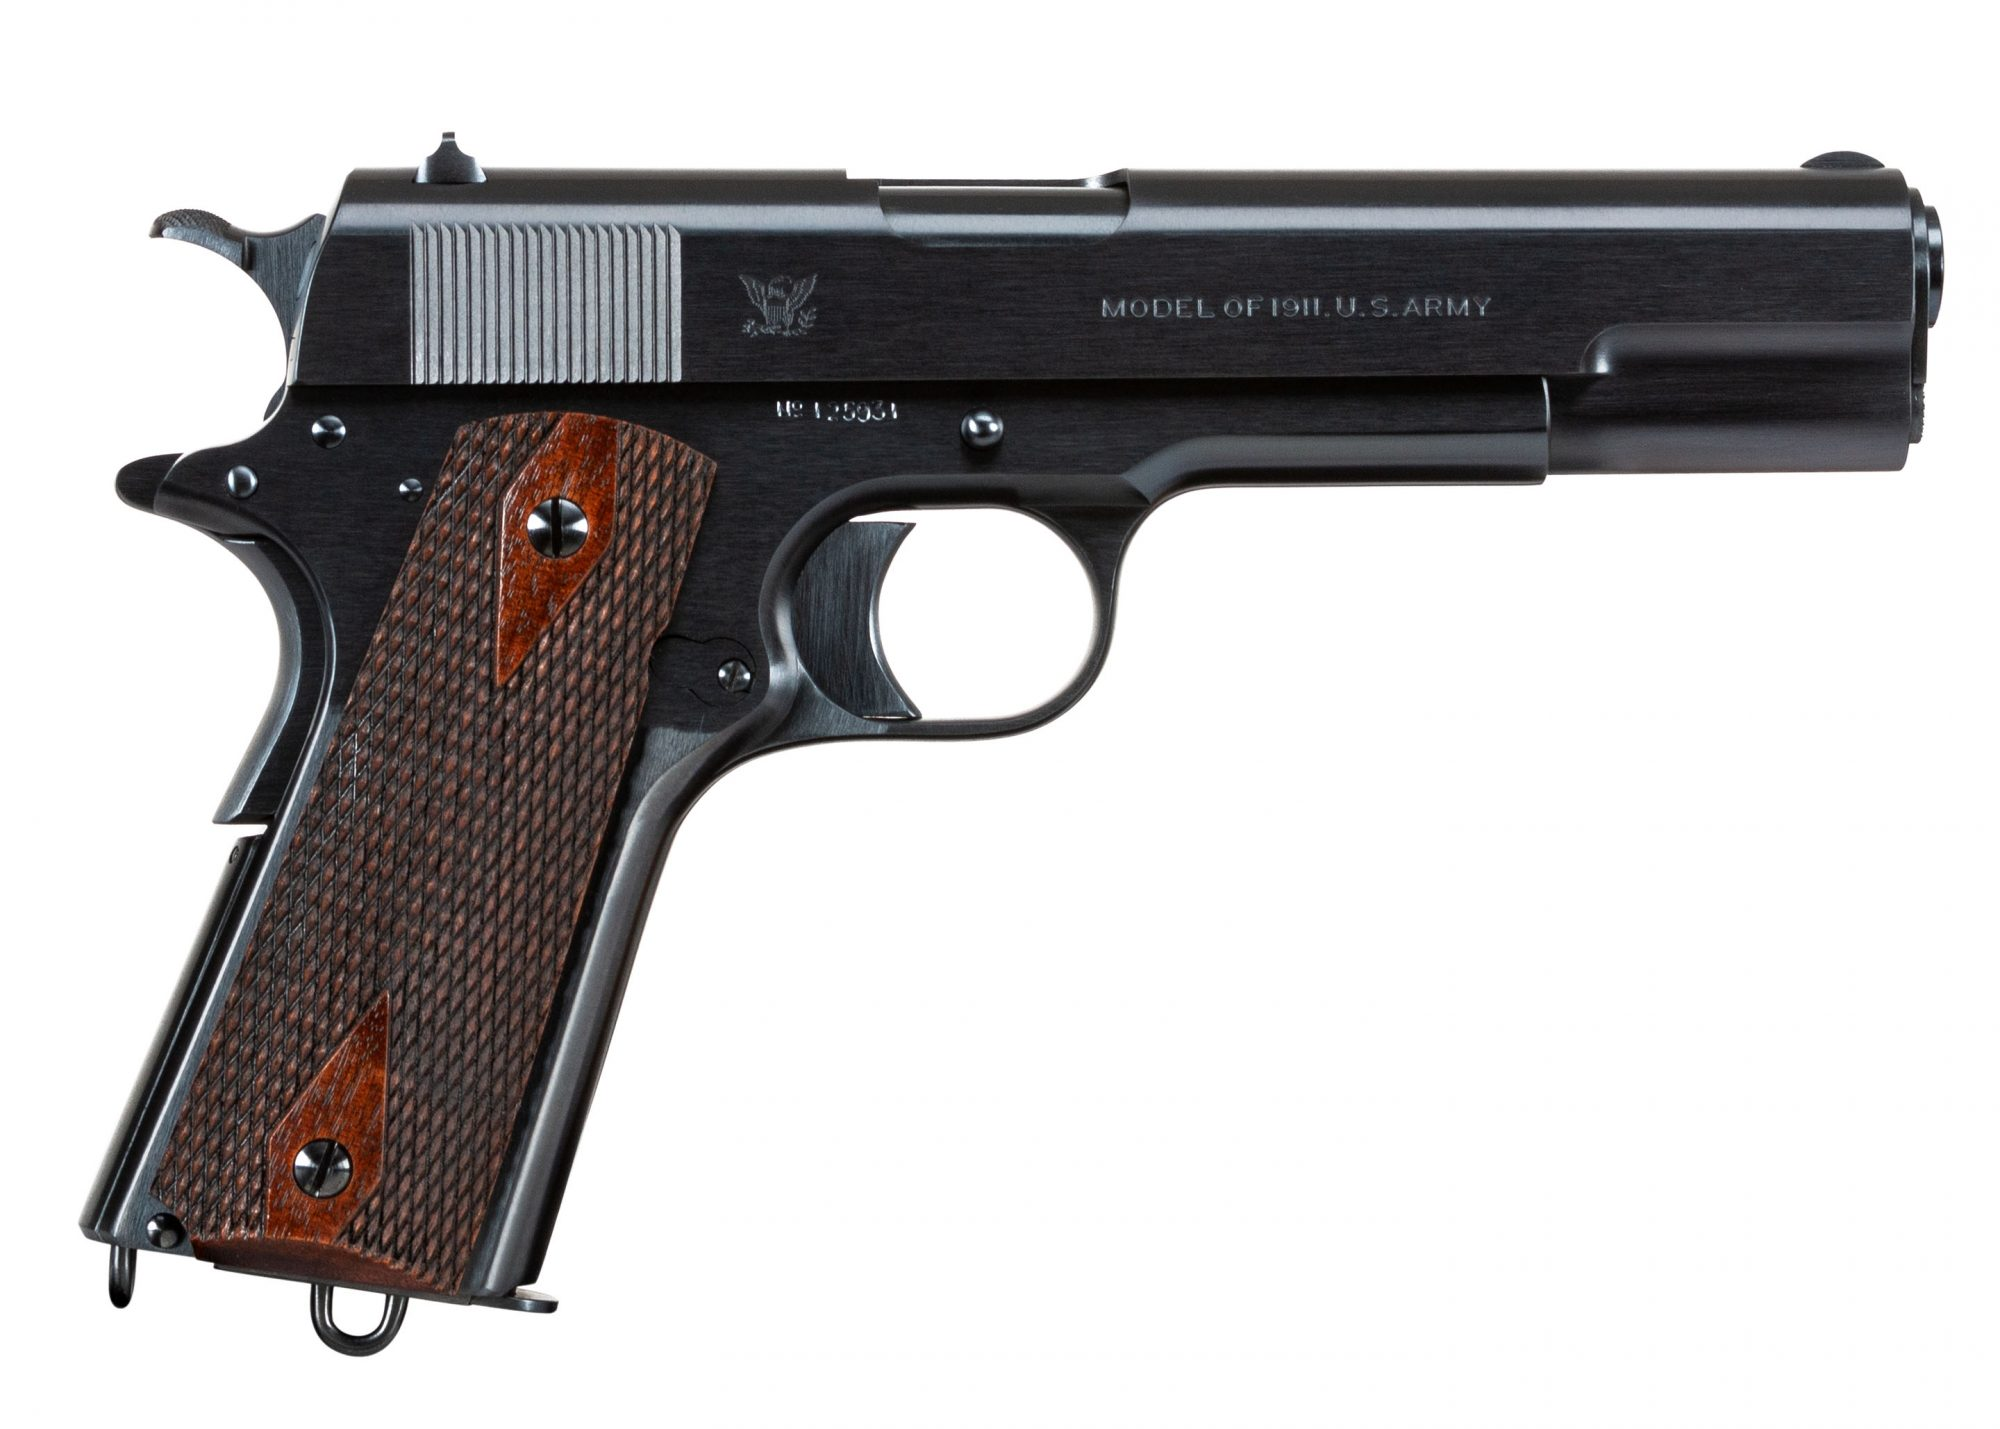 Photo of a restored Springfield Armory Model 1911, restored and for sale by Turnbull Restoration of Bloomfield, NY